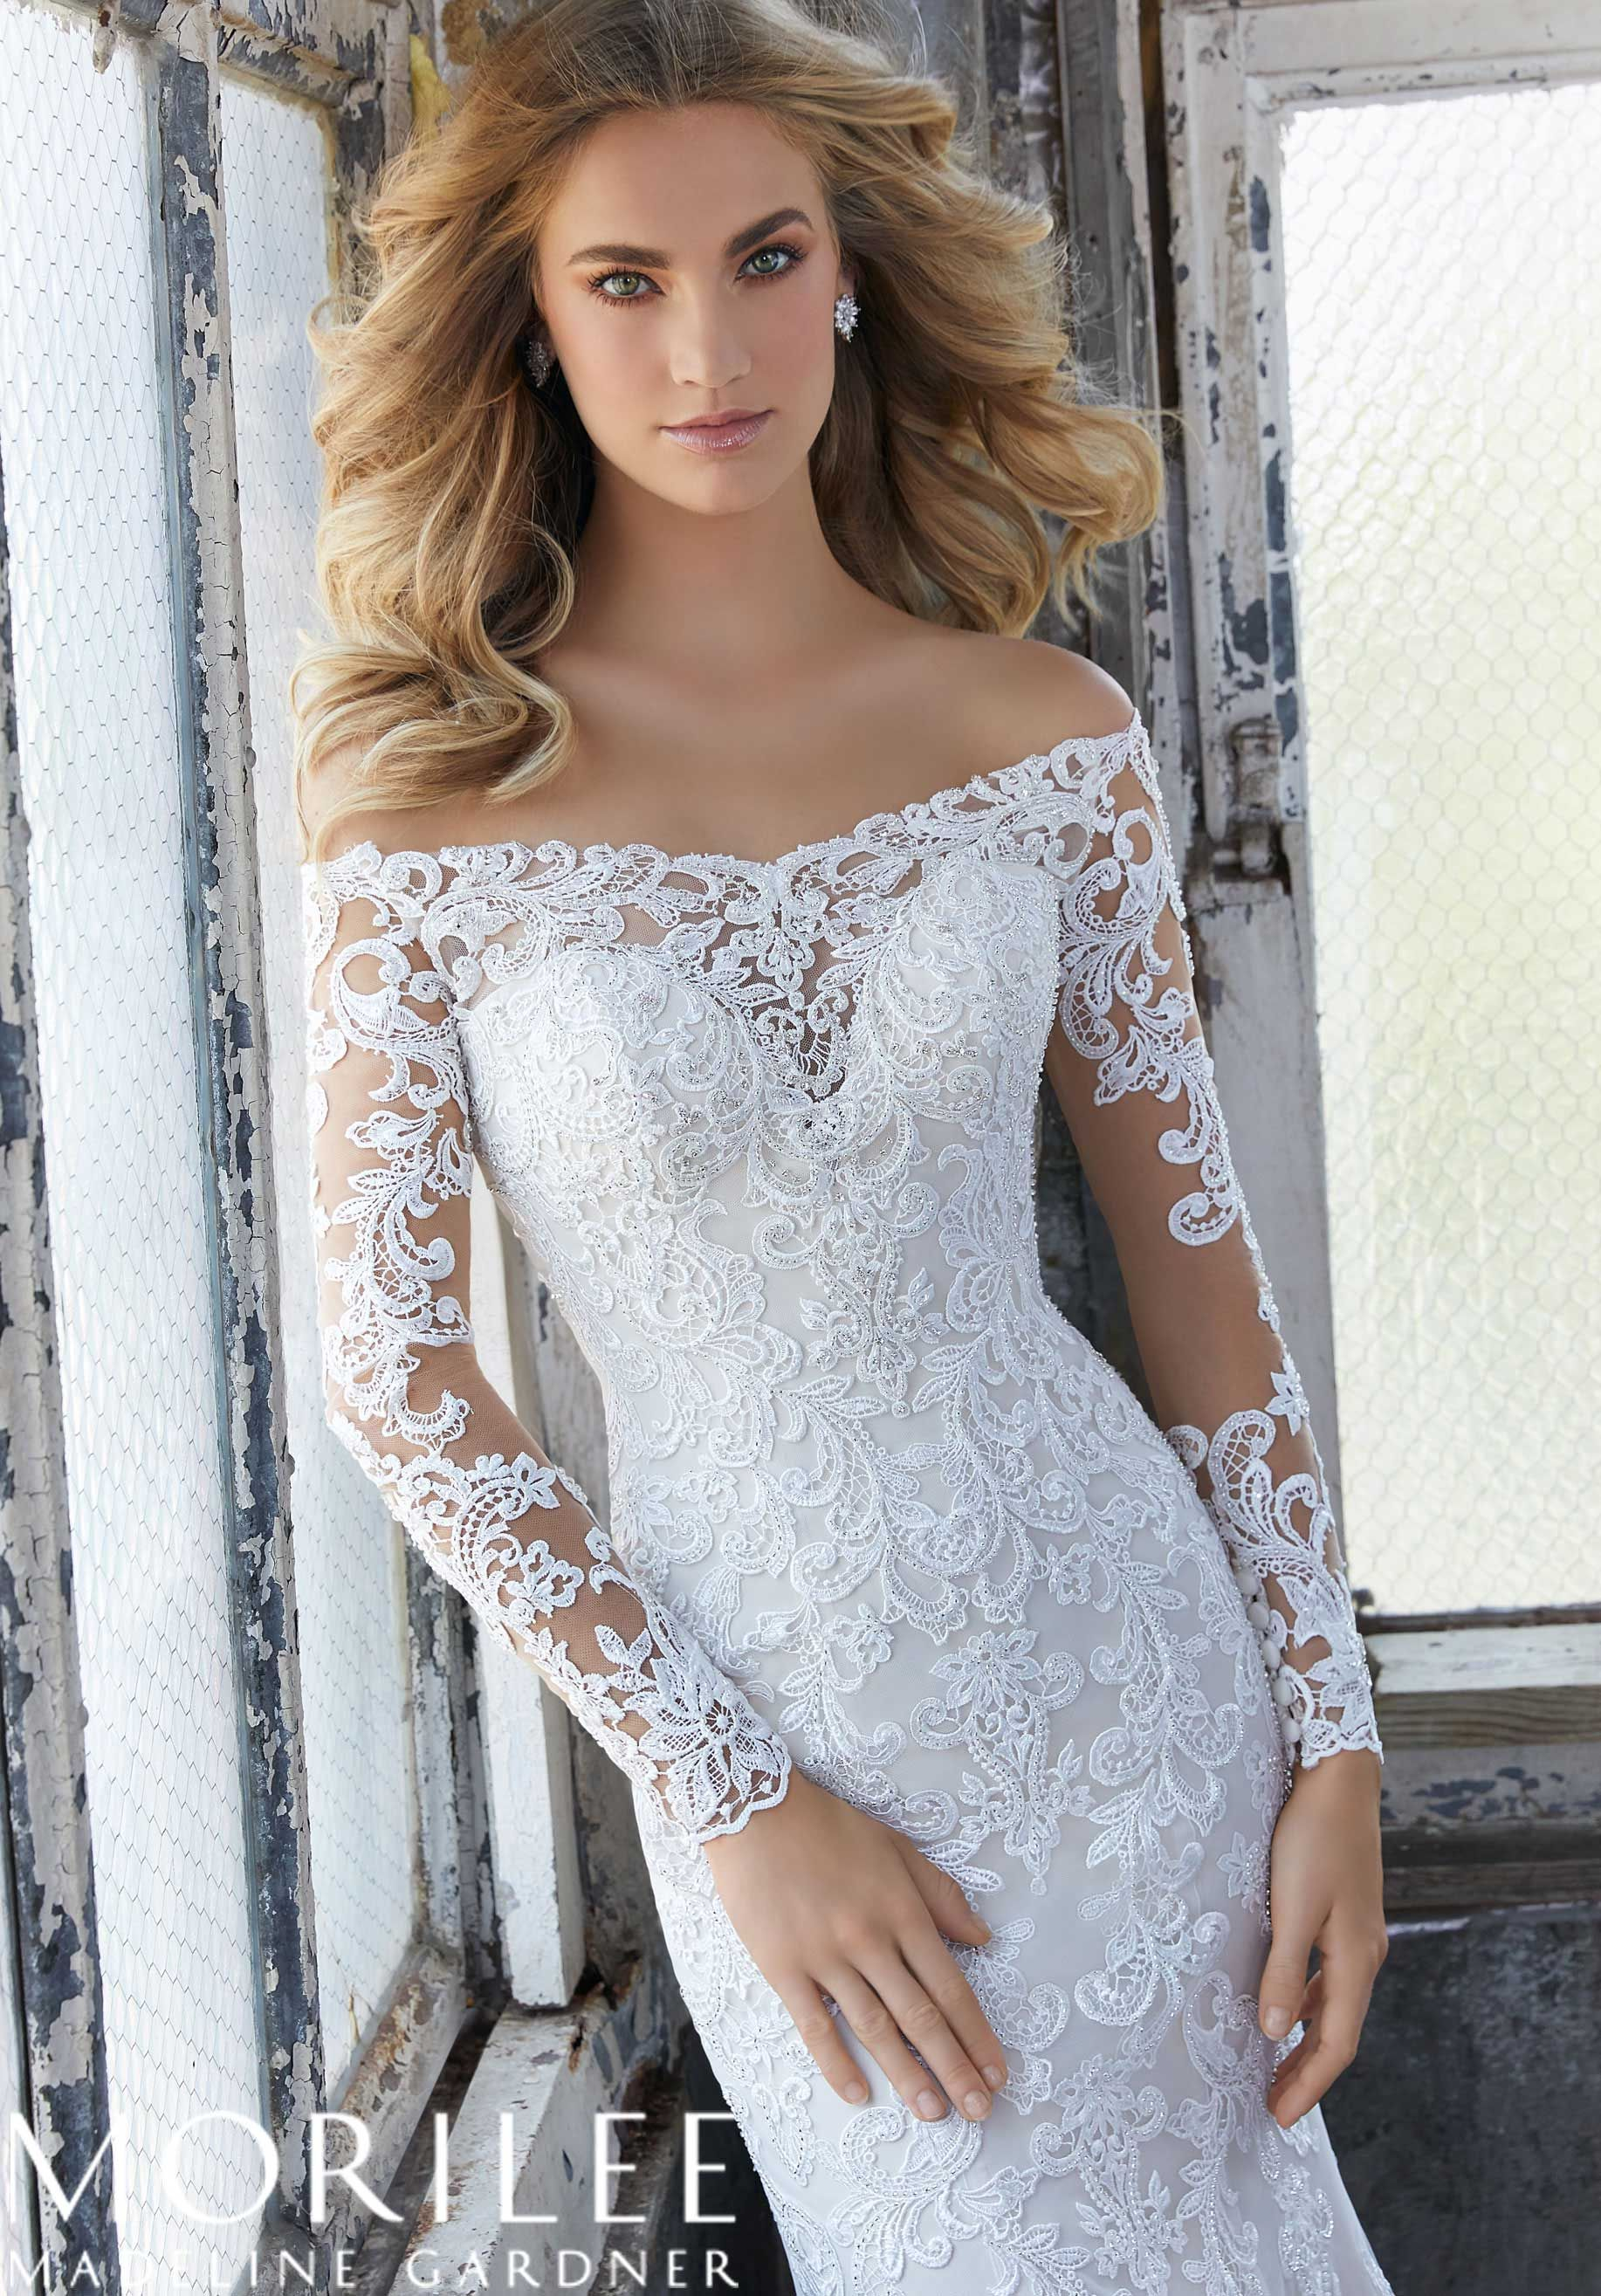 Morilee Madeline Gardner Karlee Style 8207 Elegant Fit And Flare Wedding Dress Featuring An Off The Shoulder Illusion Neckline Crystallized Venice